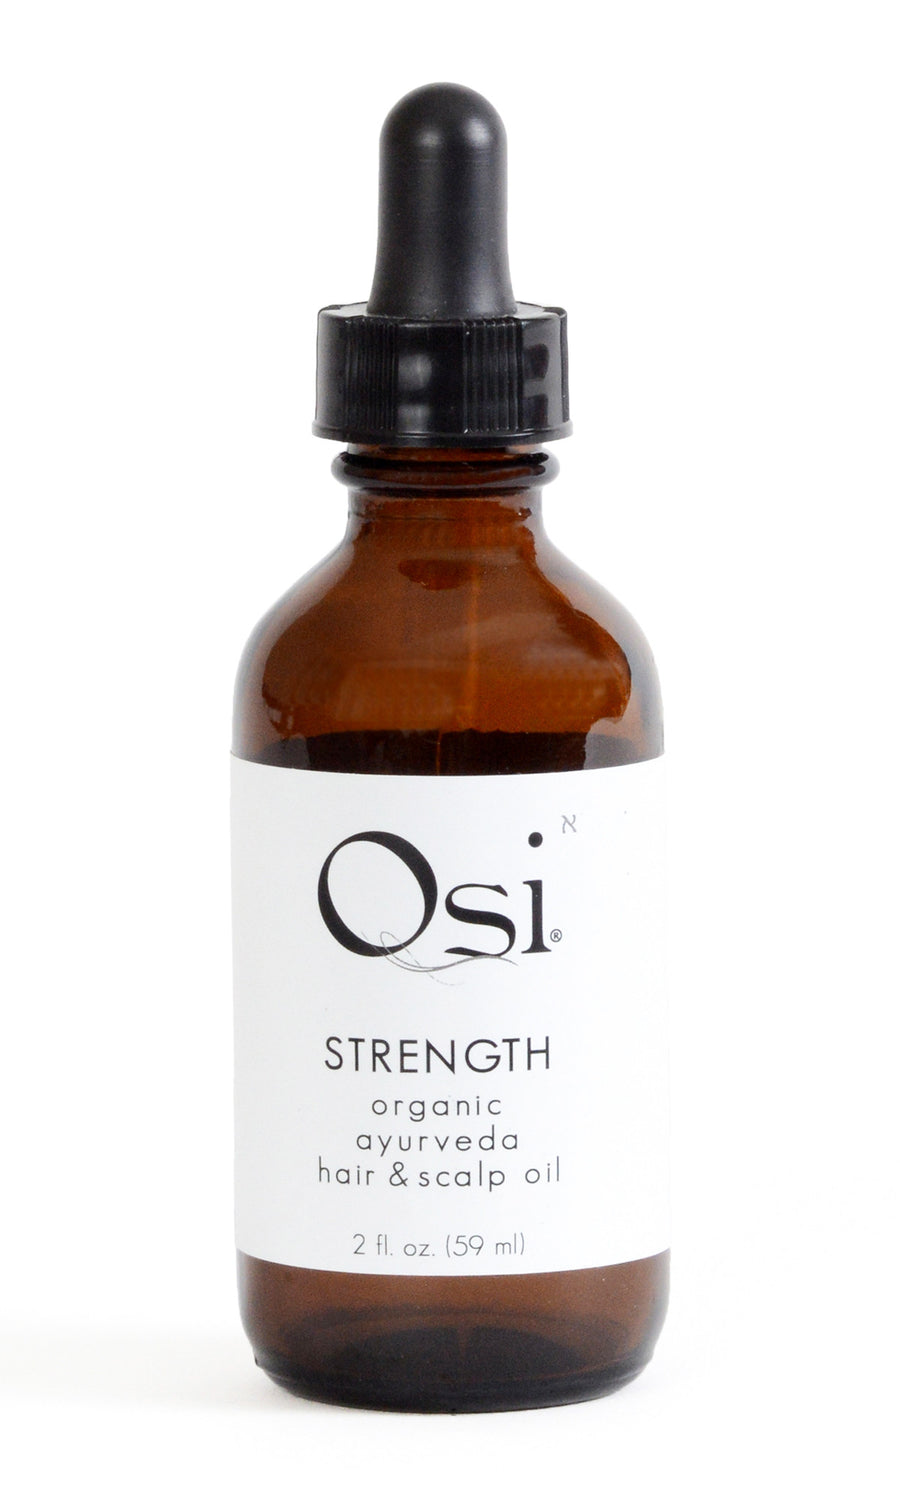 Strength Organic Ayurveda Hair & Scalp Oil